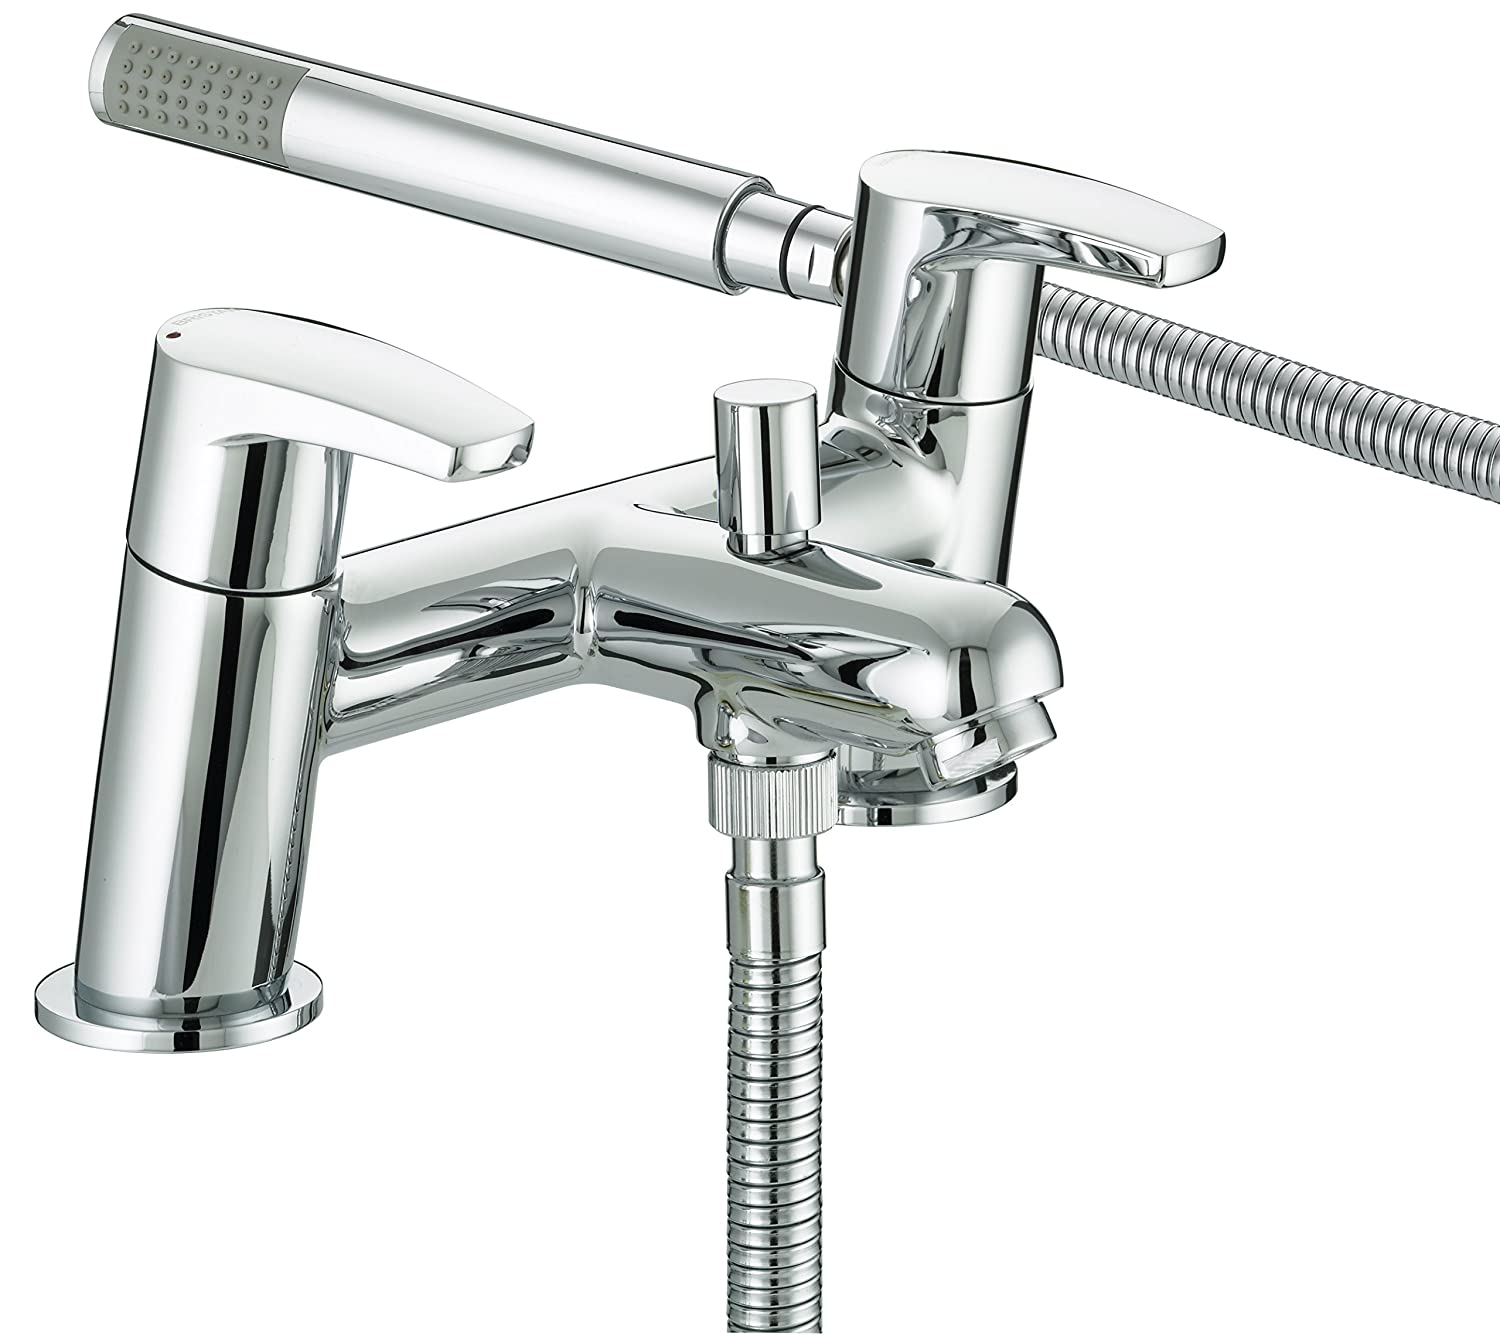 Bristan OR BSM C Orta Bath Shower Mixer - Chrome Plated: Amazon.co ...